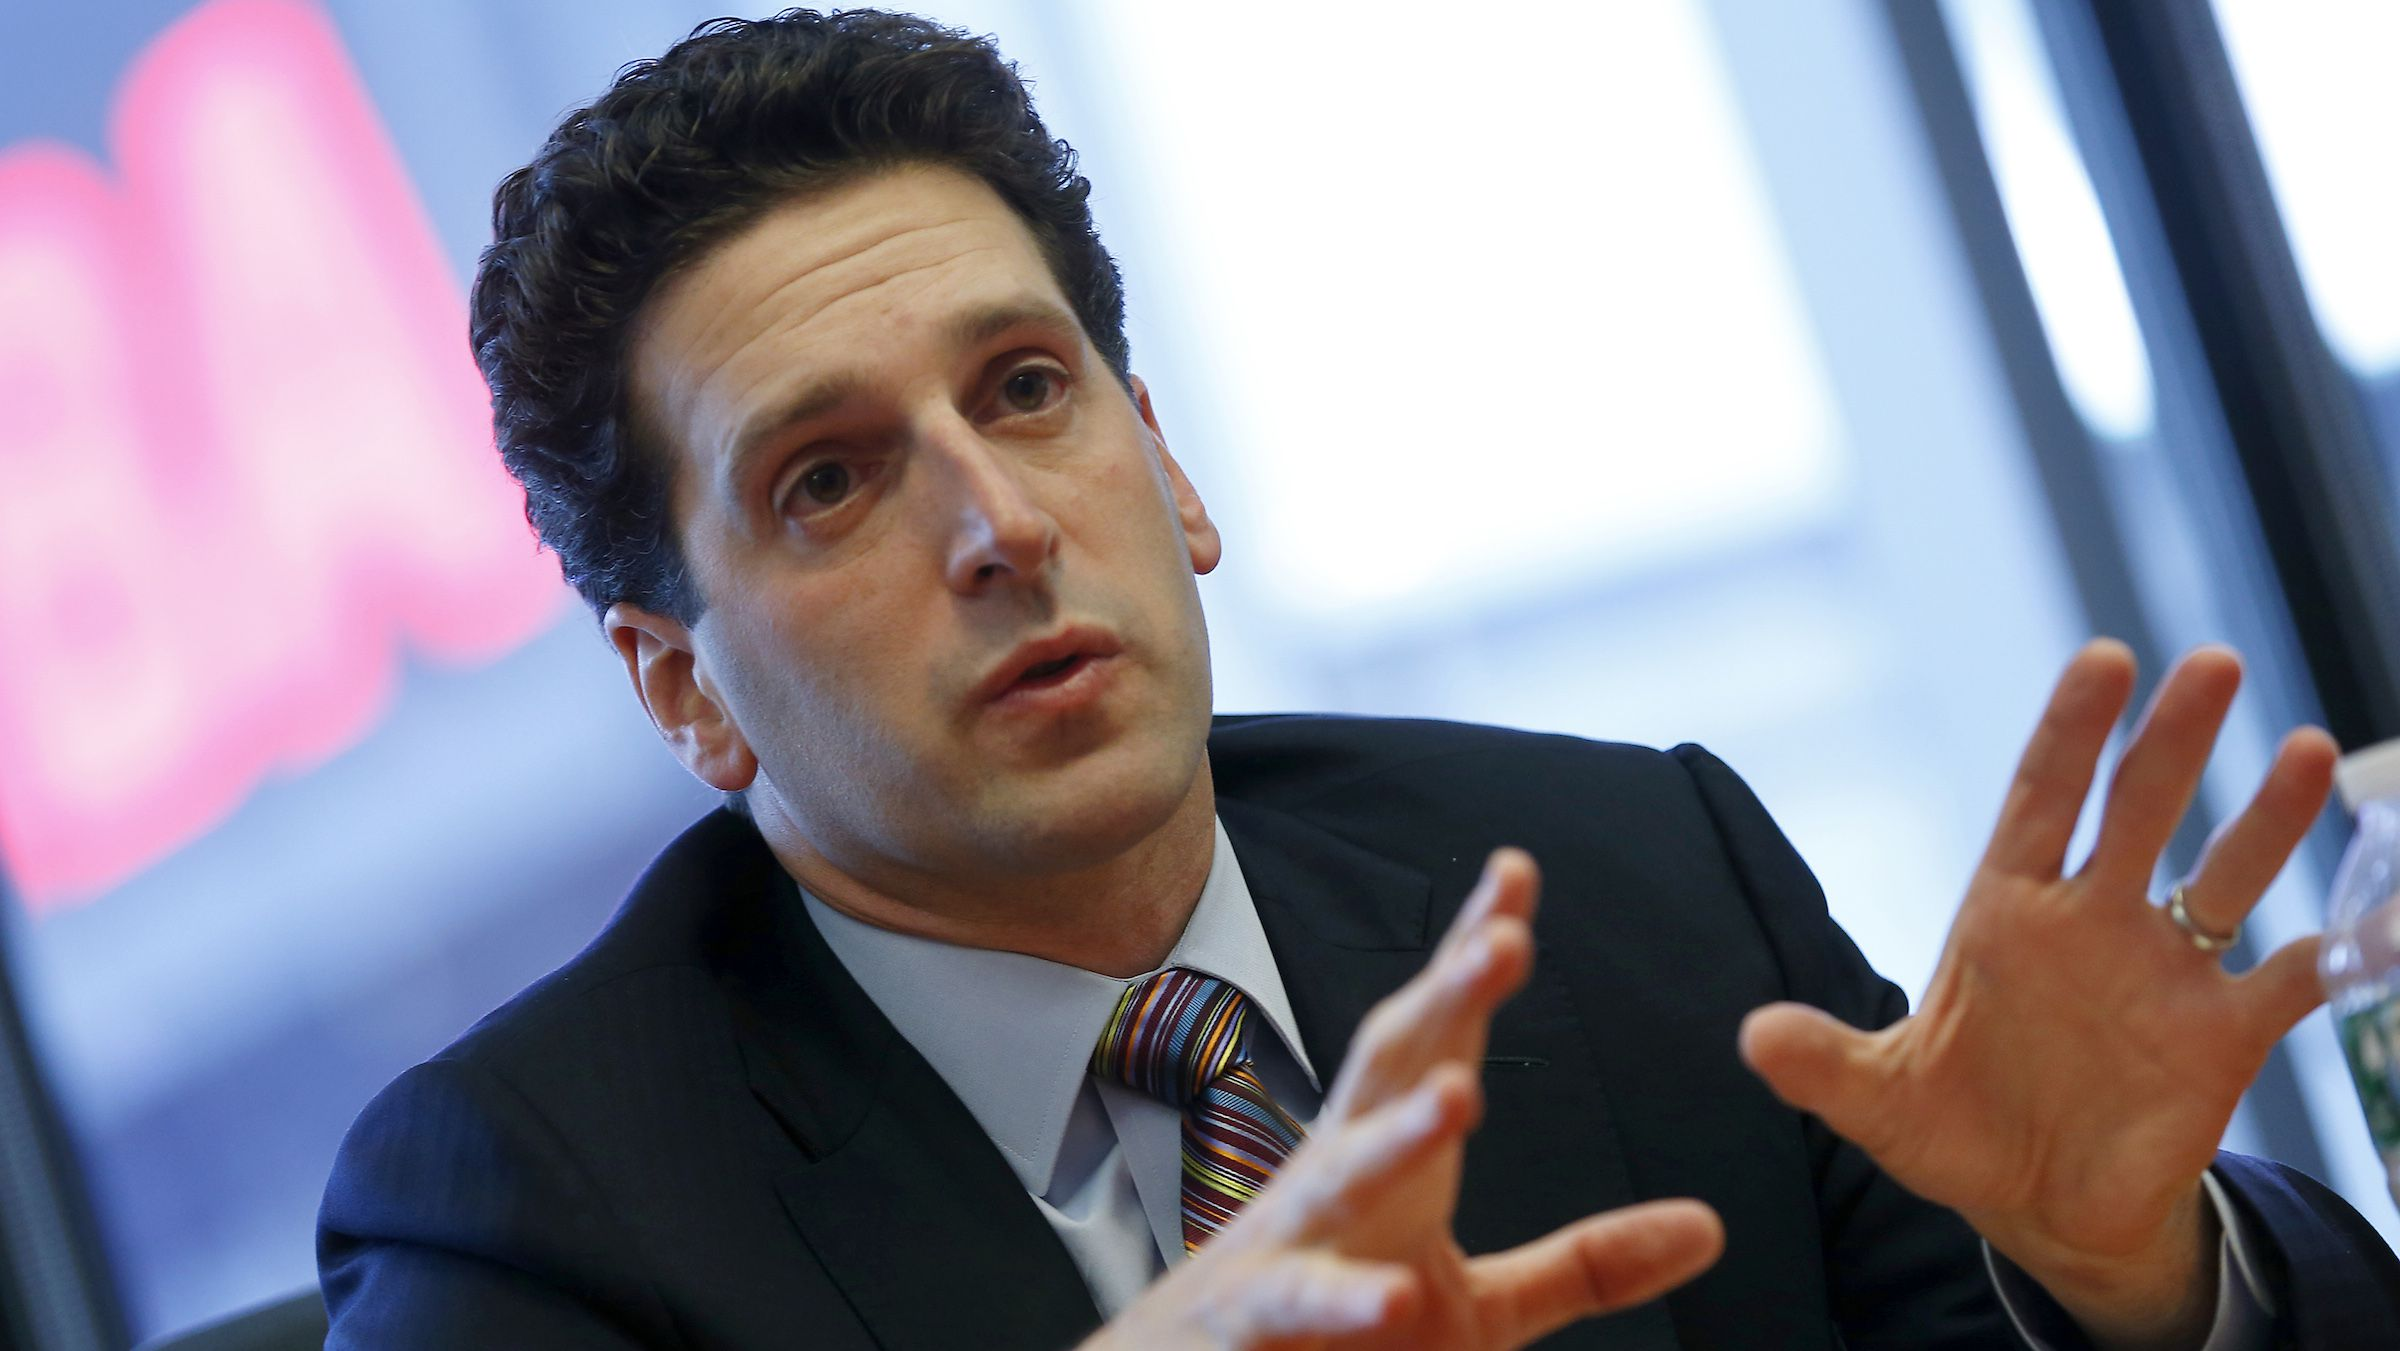 New York State Department of Financial Services Superintendent Benjamin Lawsky speaks during the Reuters Financial Regulation Summit in New York, April 29, 2014.   REUTERS/Mike Segar   (UNITED STATES - Tags: BUSINESS POLITICS) - RTR3N3QW